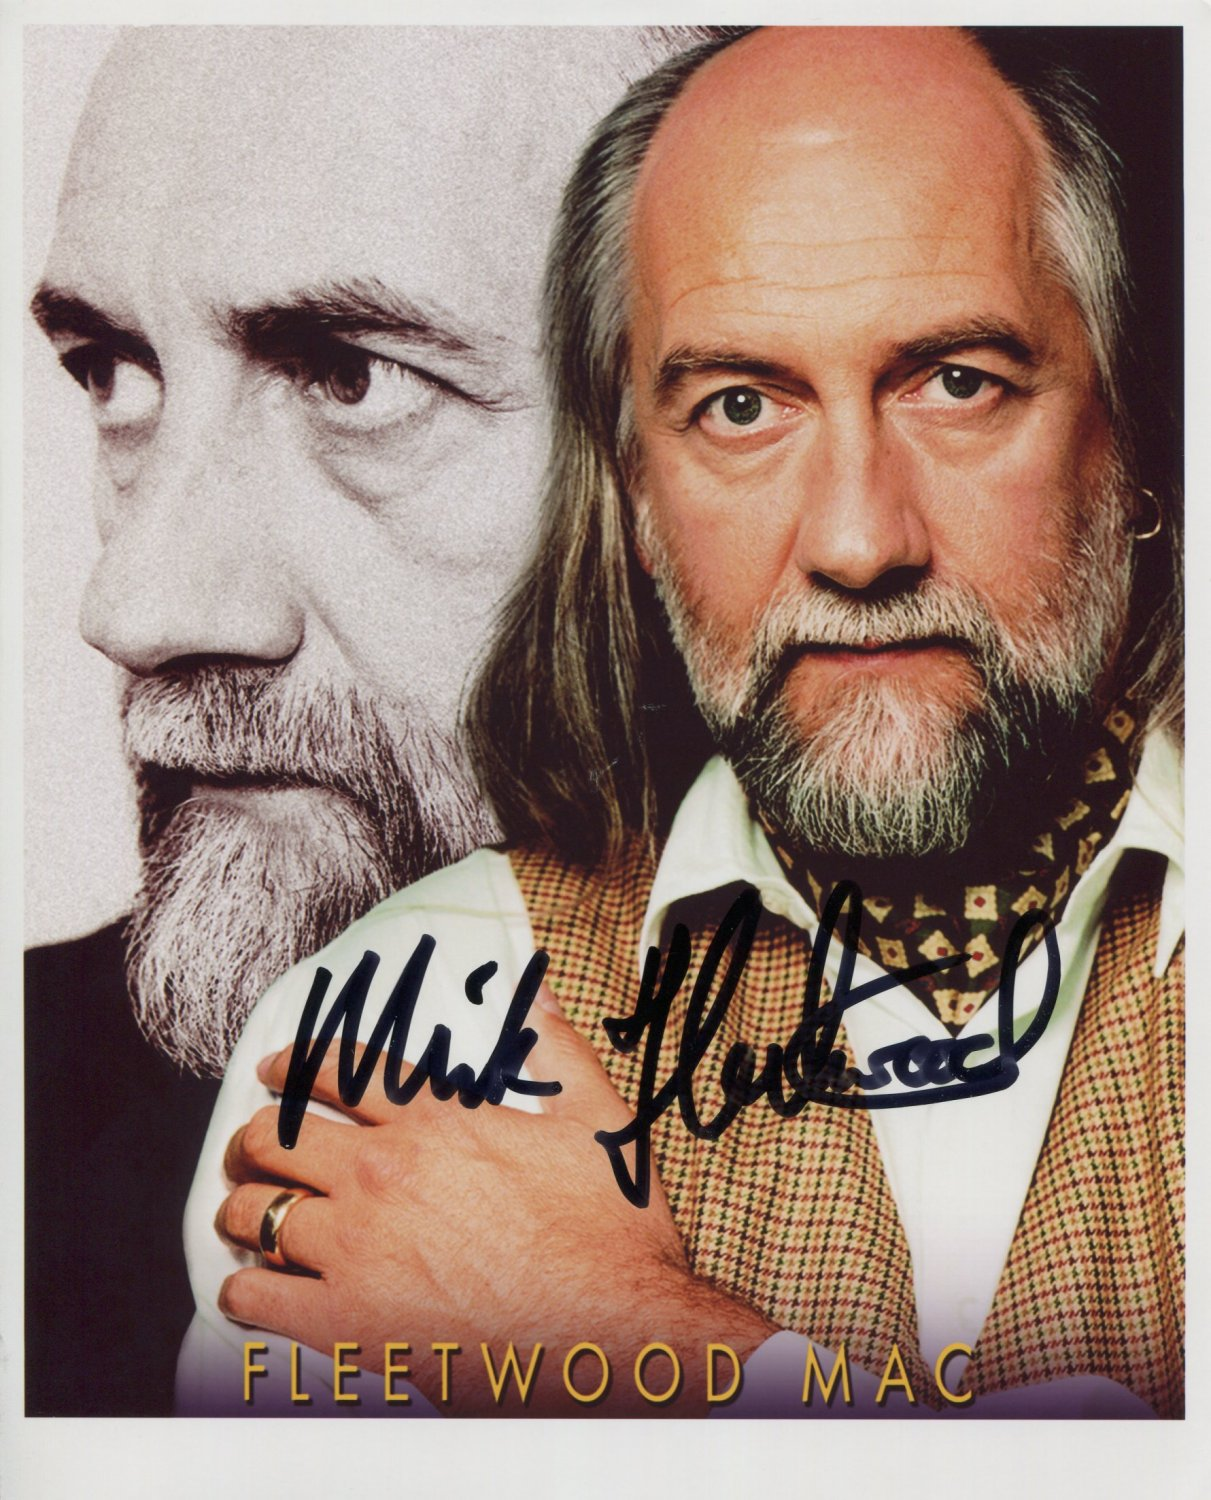 """Mick Fleetwood Mac SIGNED 8"""" x 10"""" Photo + Certificate Of Authentication 100% Genuine"""